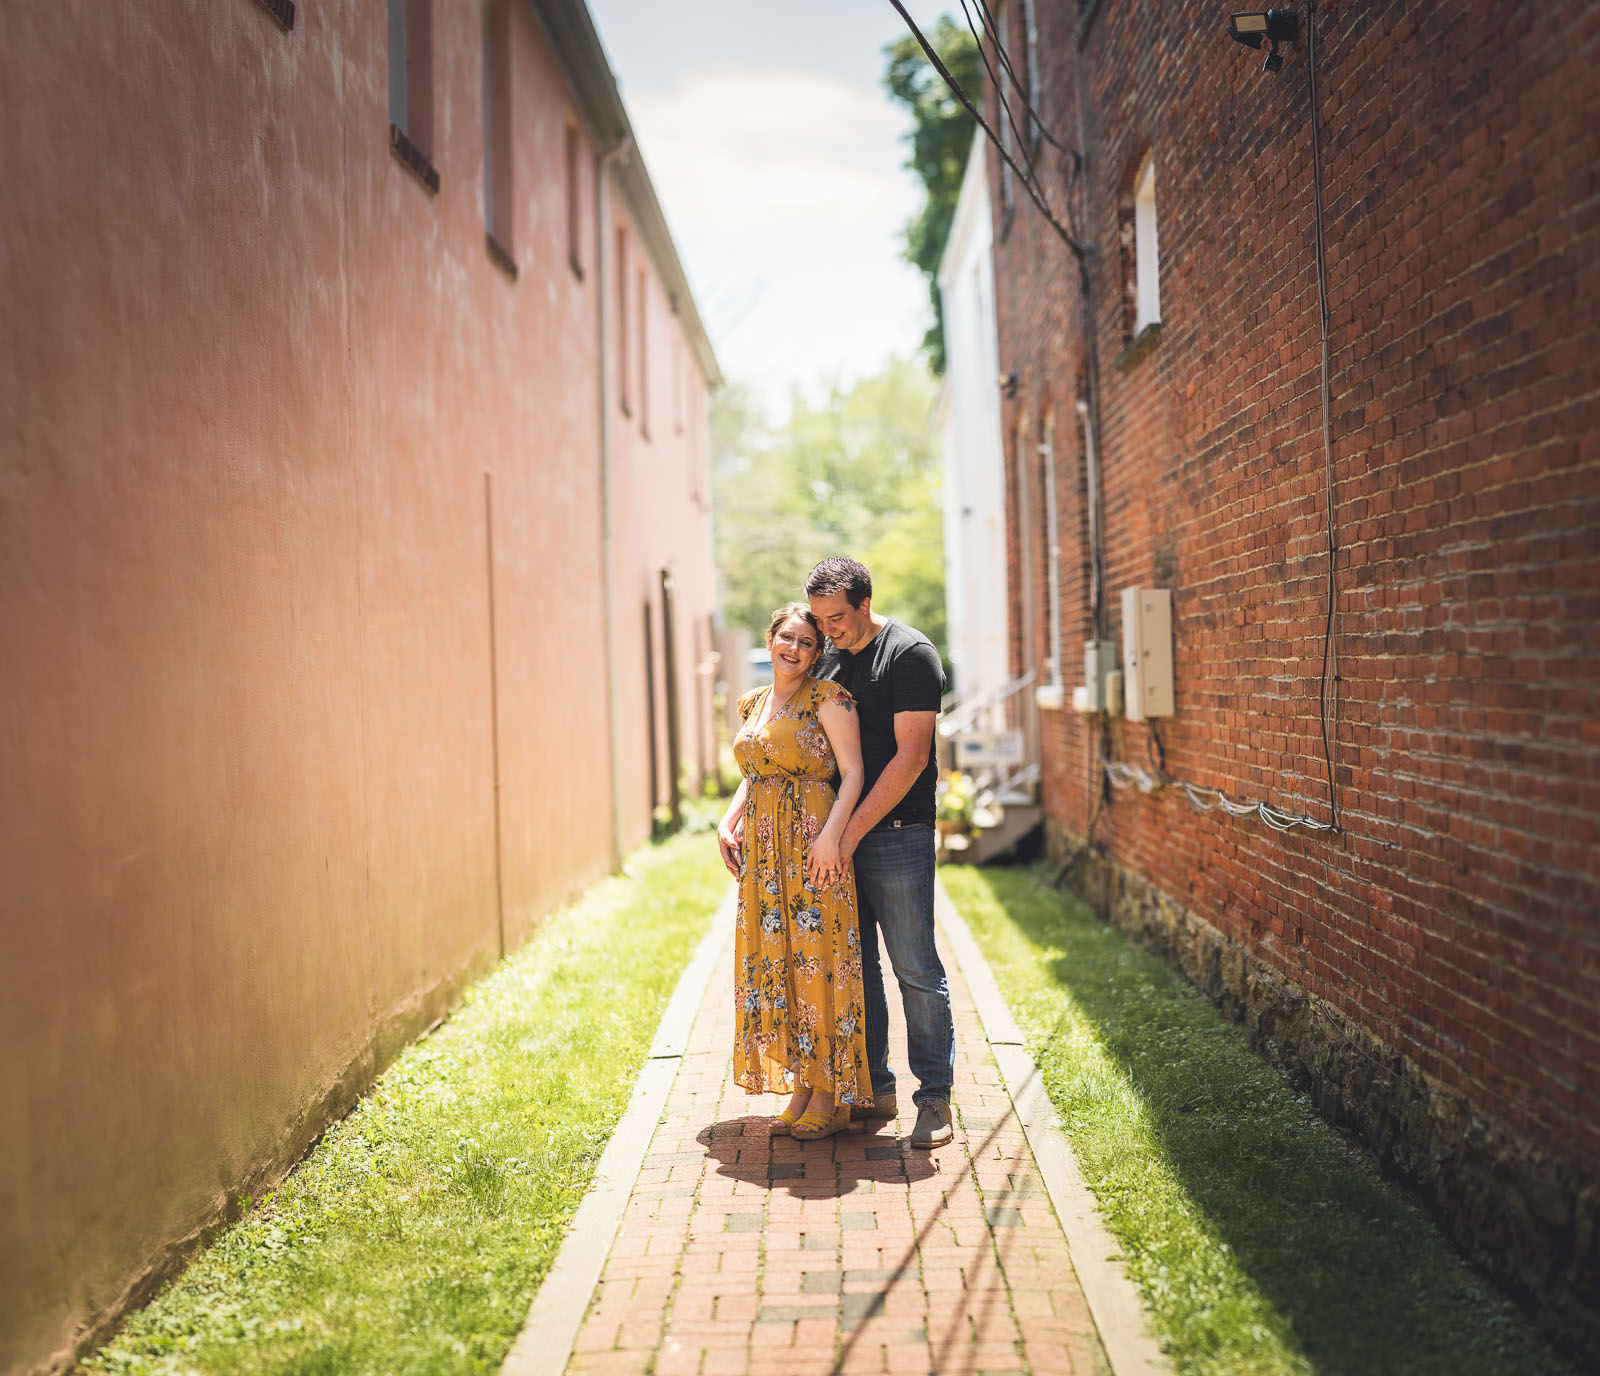 Creative Brick Engagement Photos